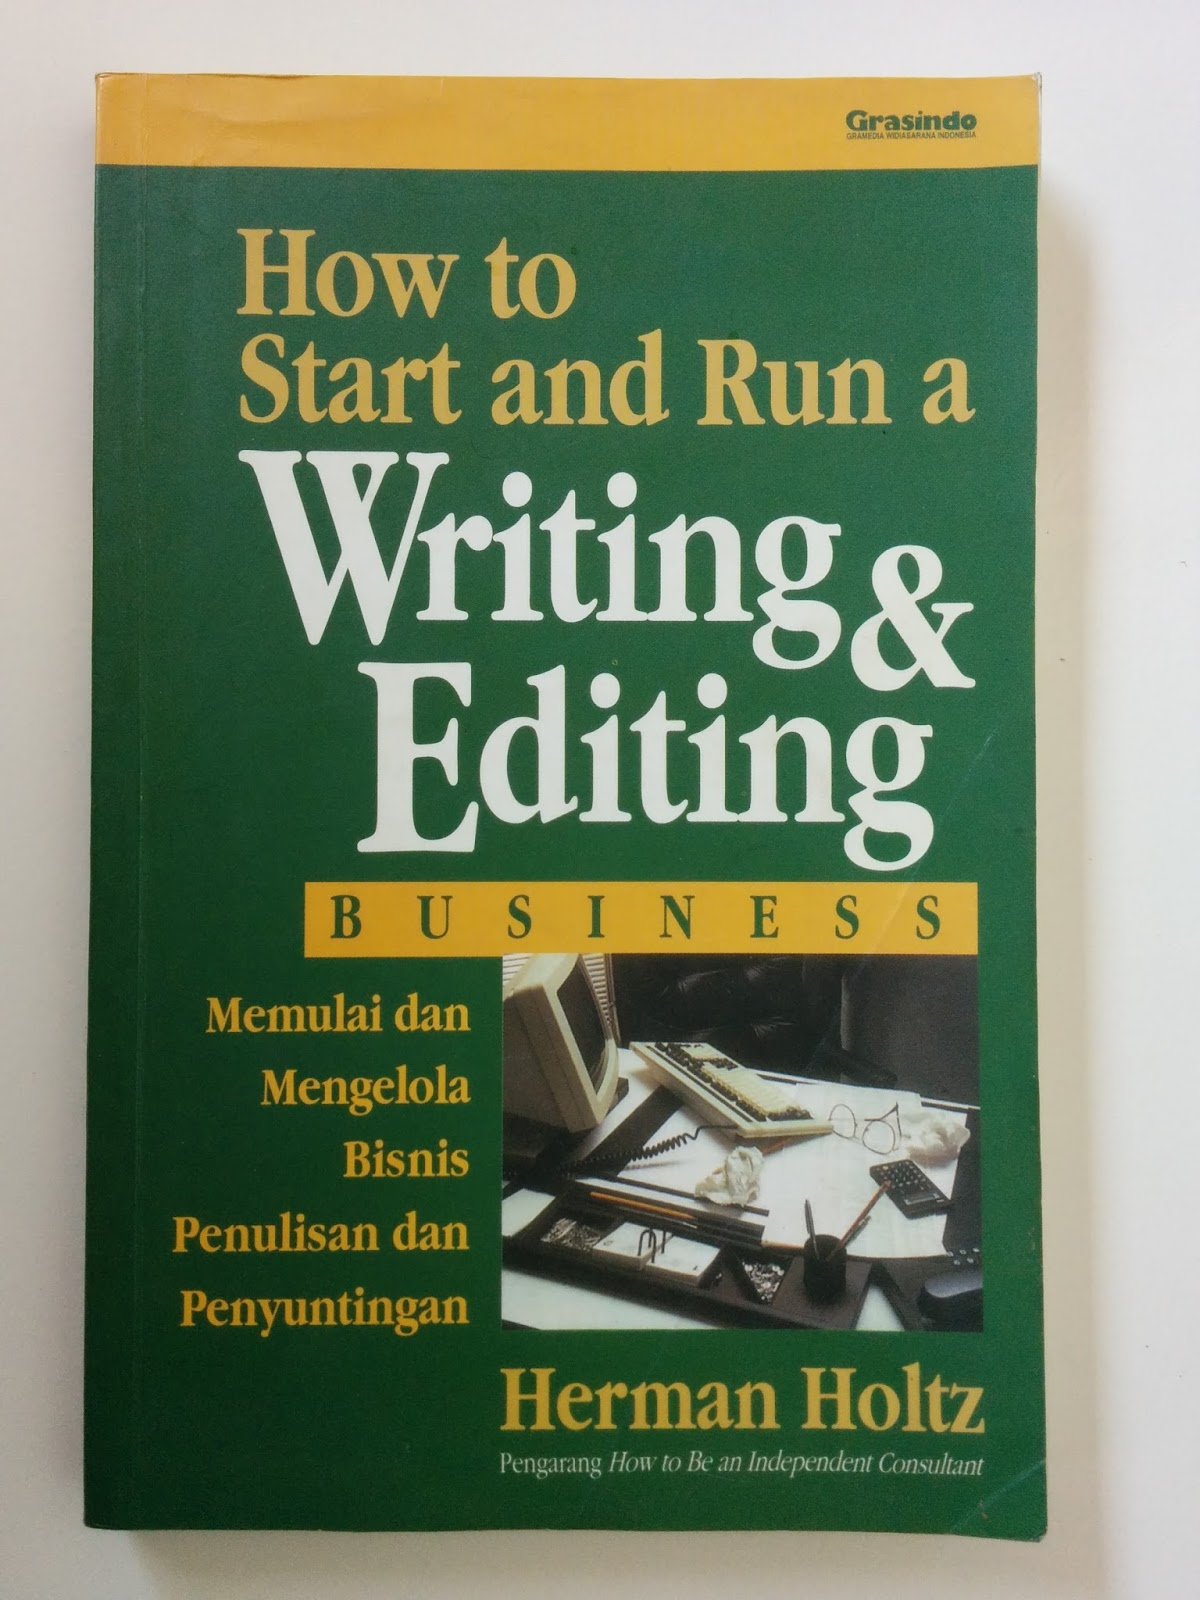 Buku Import How to Start and Run a Writing & Editing Business